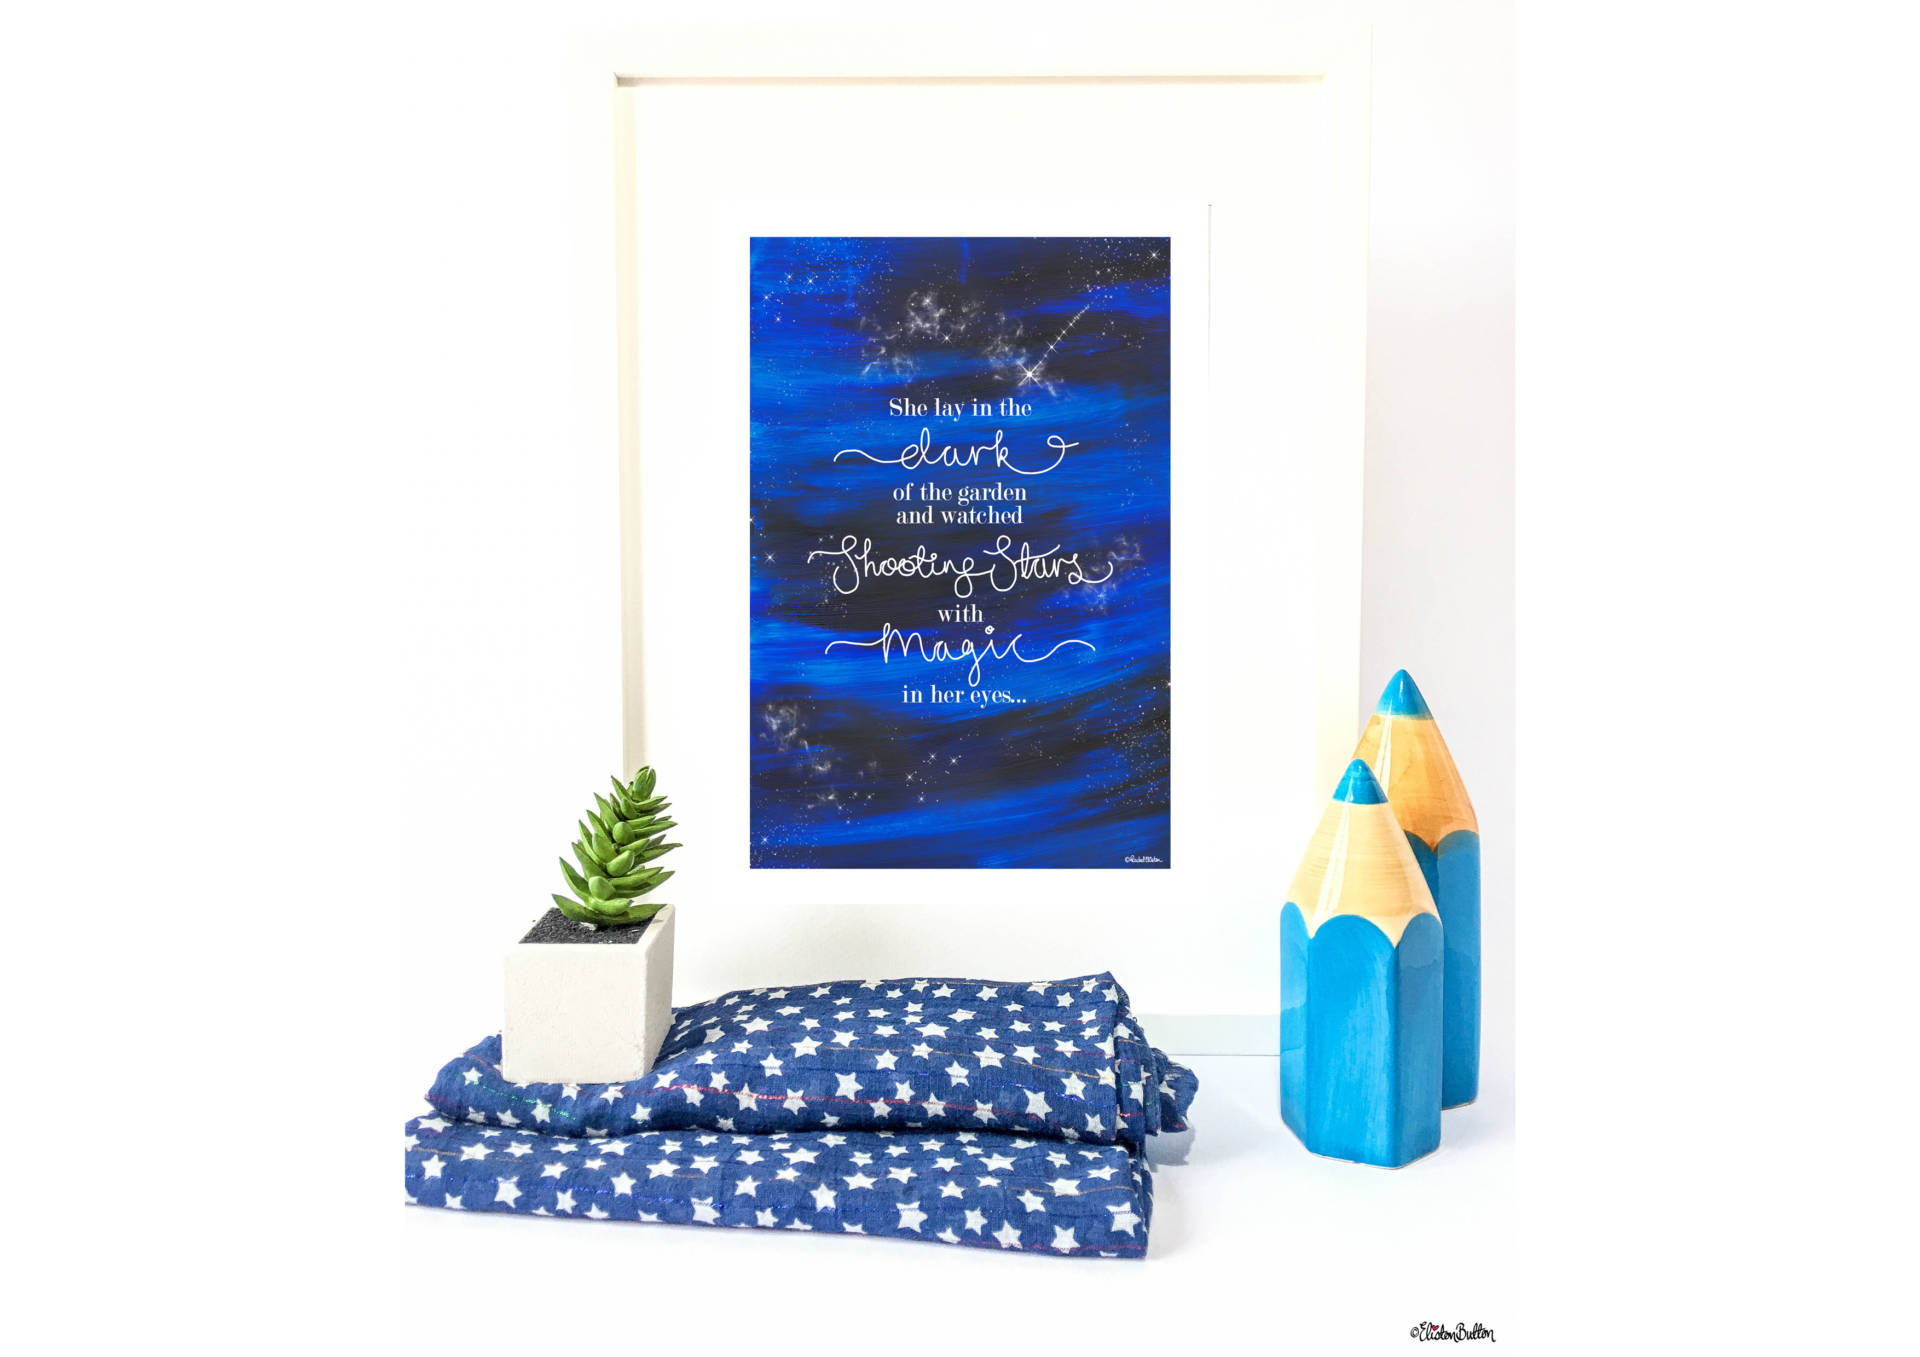 Shooting Stars Quote Print in Frame with Painted Background and Hand Lettering by Eliston Button. - Create 30 - No. 23 - Shooting Star Quote Print at www.elistonbutton.com - Eliston Button - That Crafty Kid – Art, Design, Craft & Adventure.